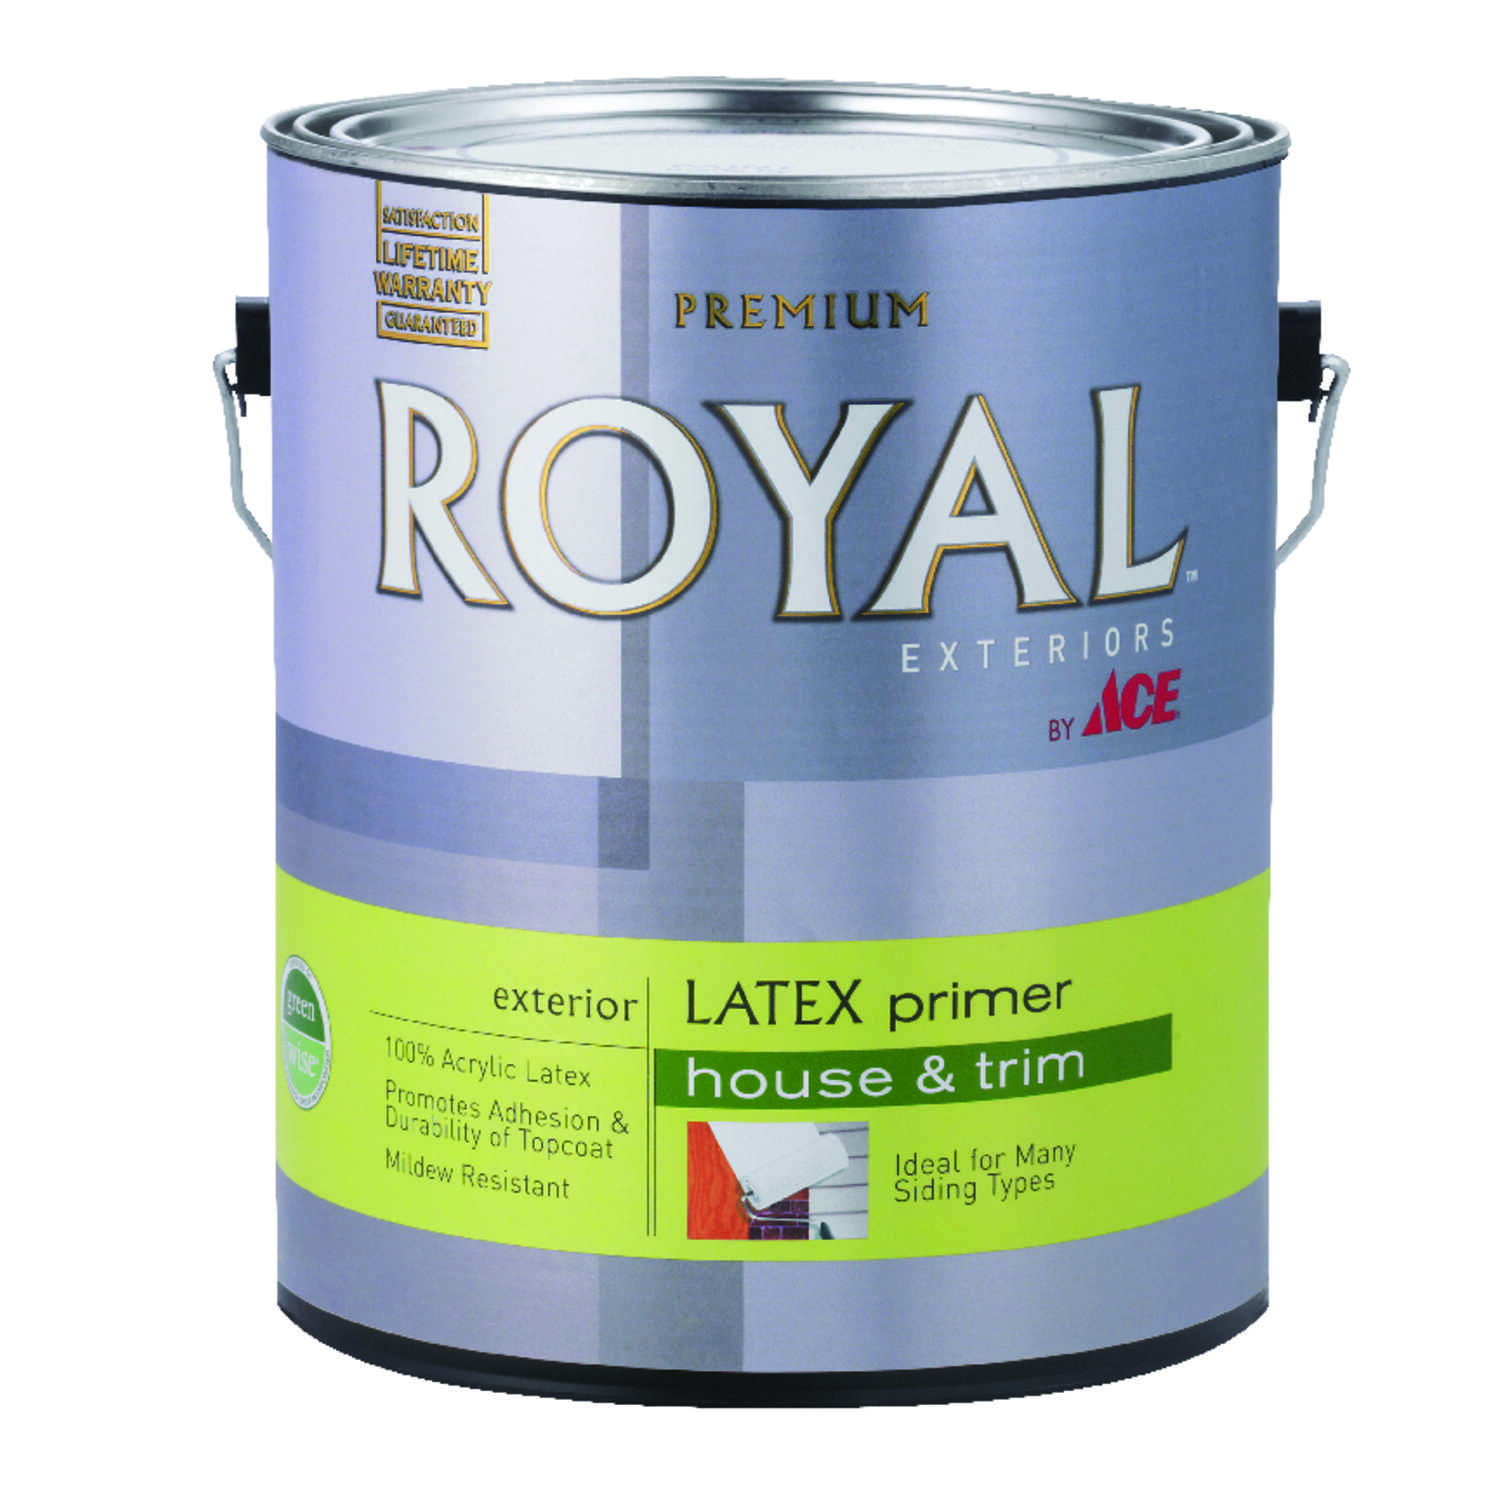 Ace  Royal Exteriors  Flat  White  Acrylic Latex  For Wood 1 gal. Latex Primer